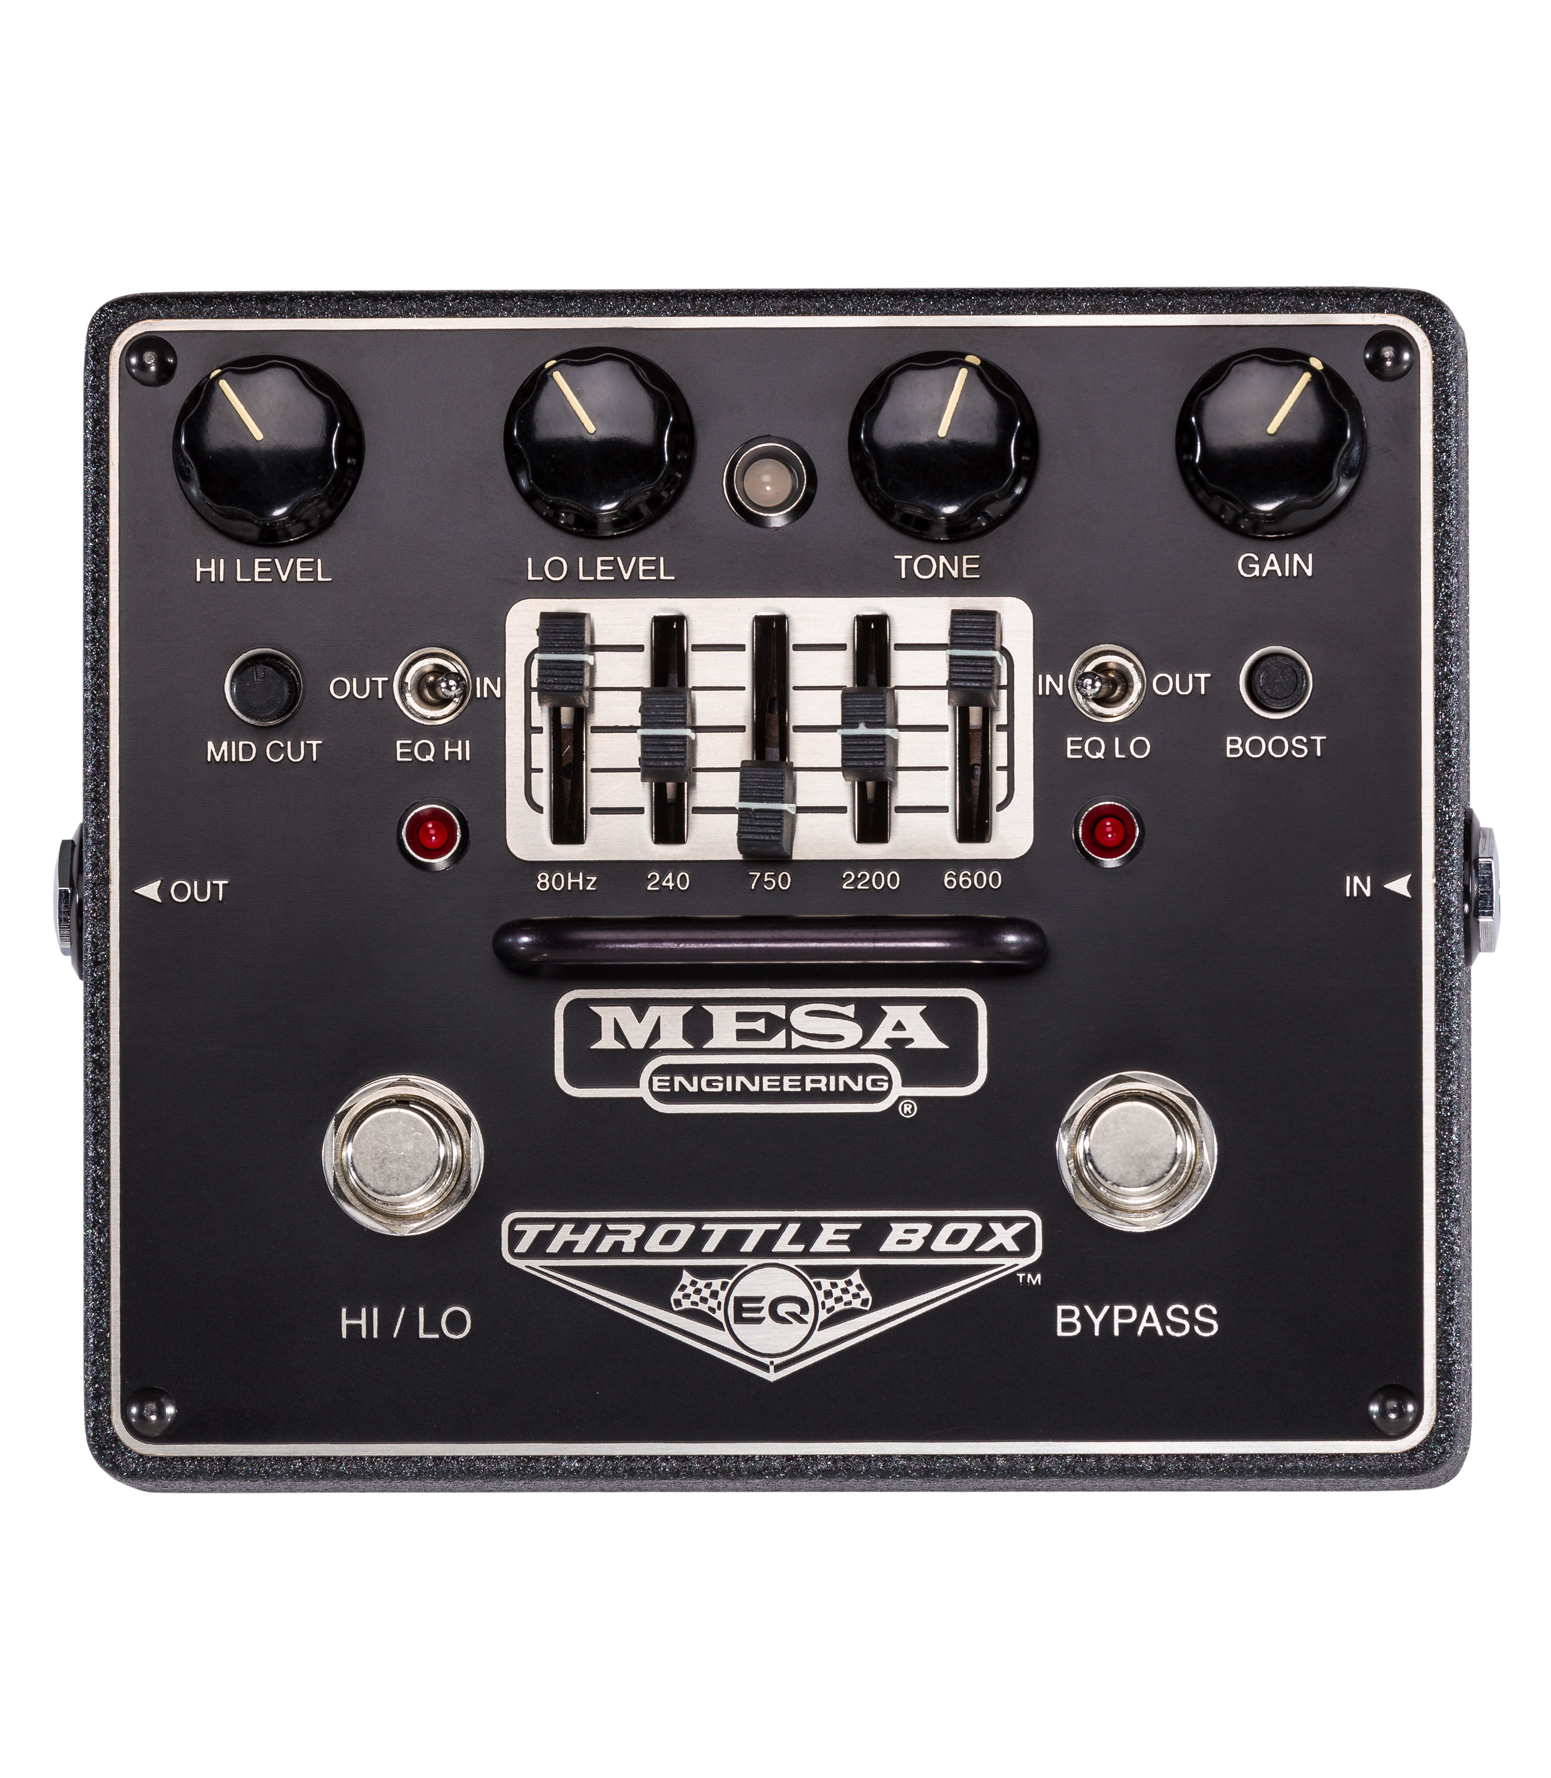 buy mesaboogie throttle box eq 5 band graphic pedal